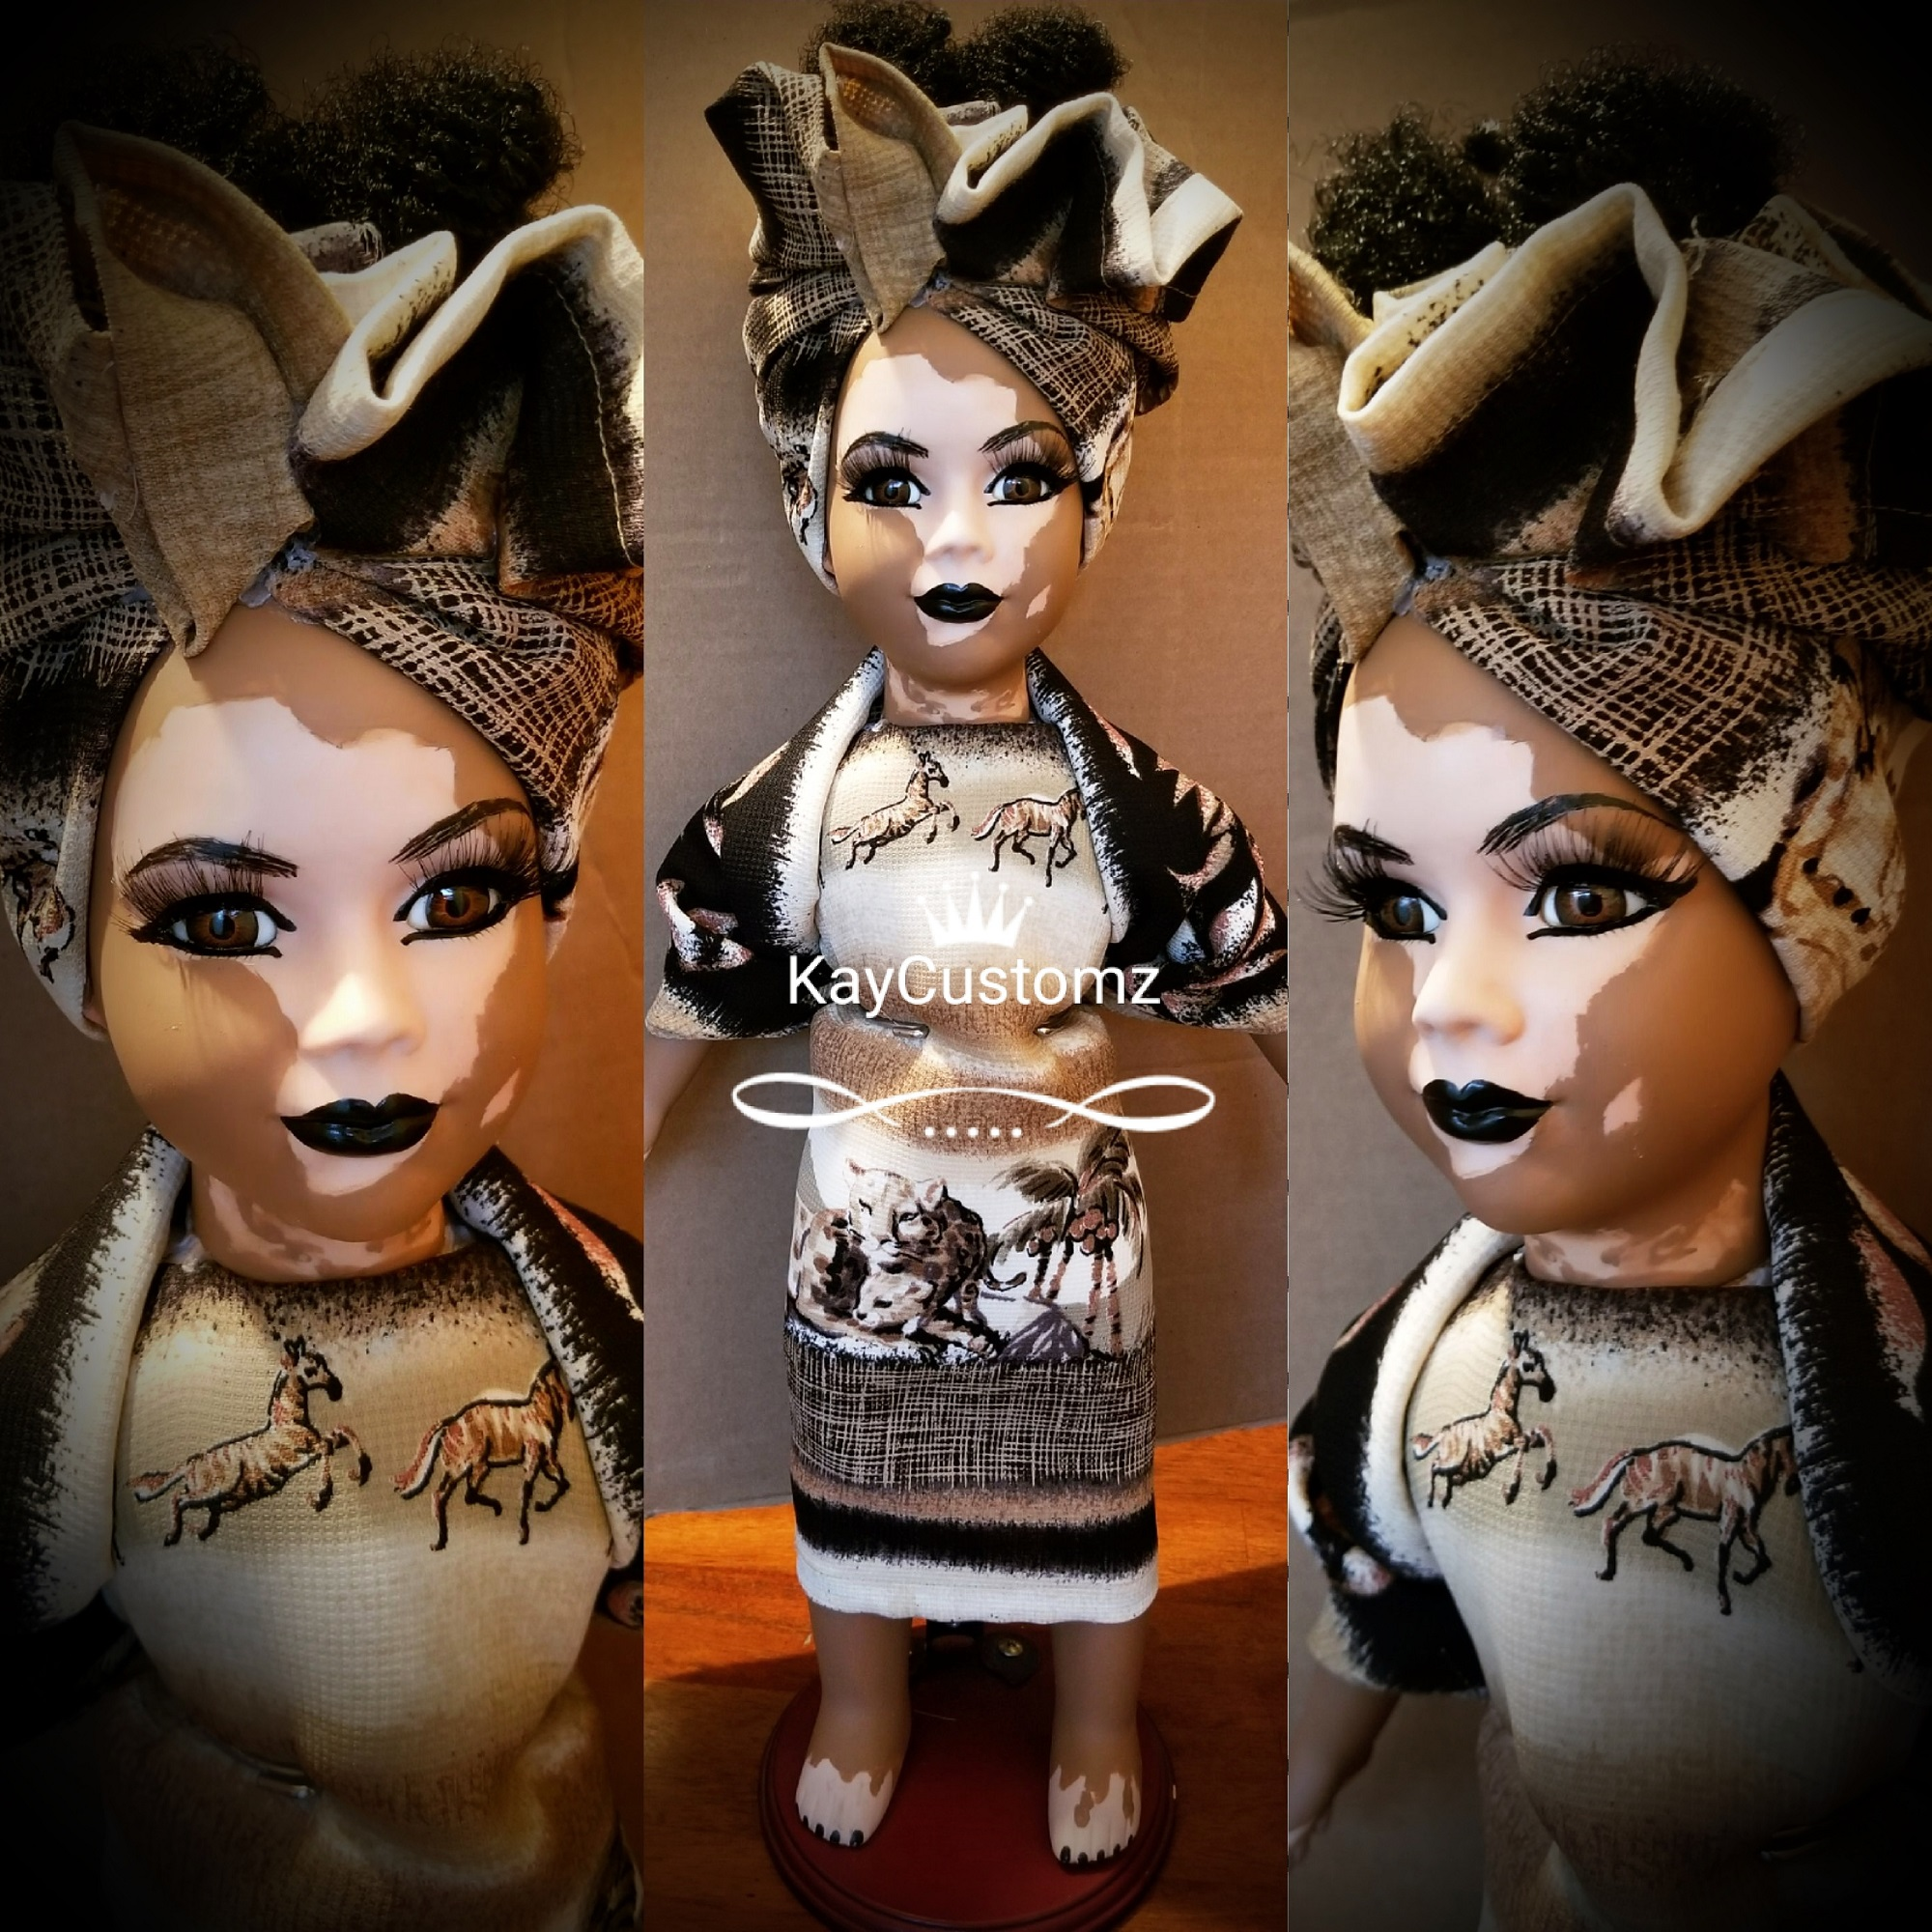 These new dolls with vitiligo aim to teach kids about diversity